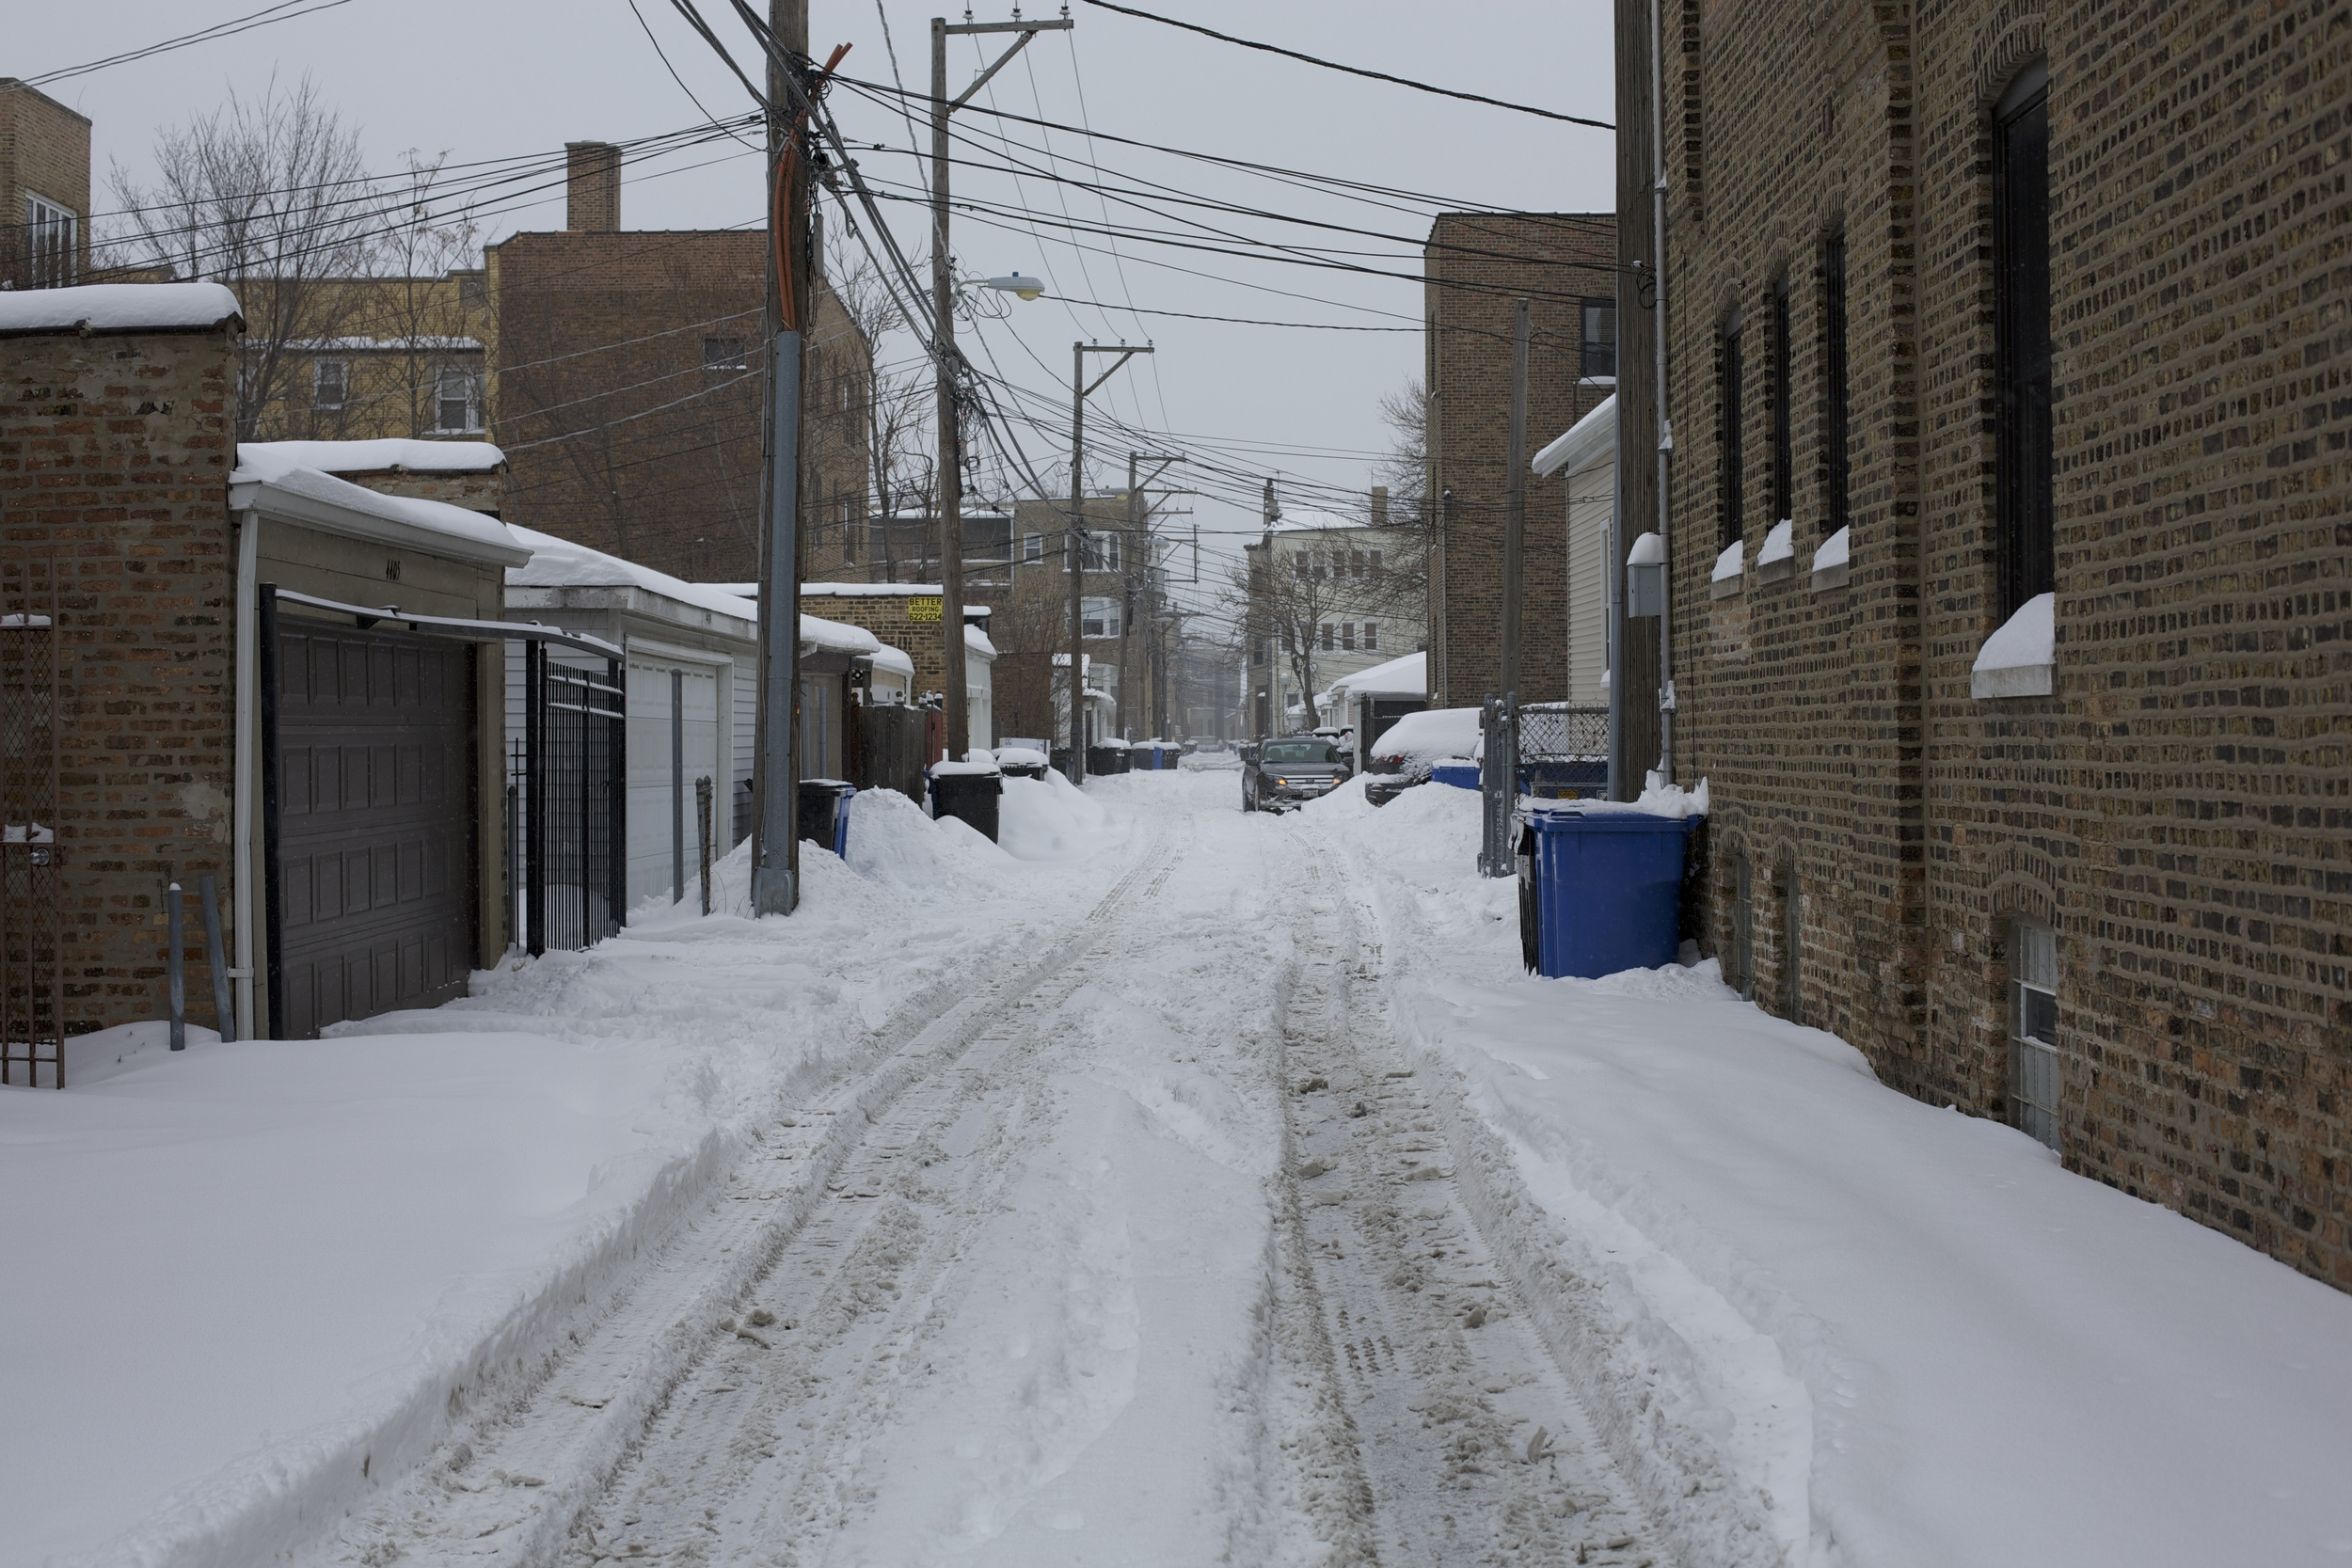 Generally unplowed, the Alleys are only disturbed by the tracks of cars as they attempt to free themselves